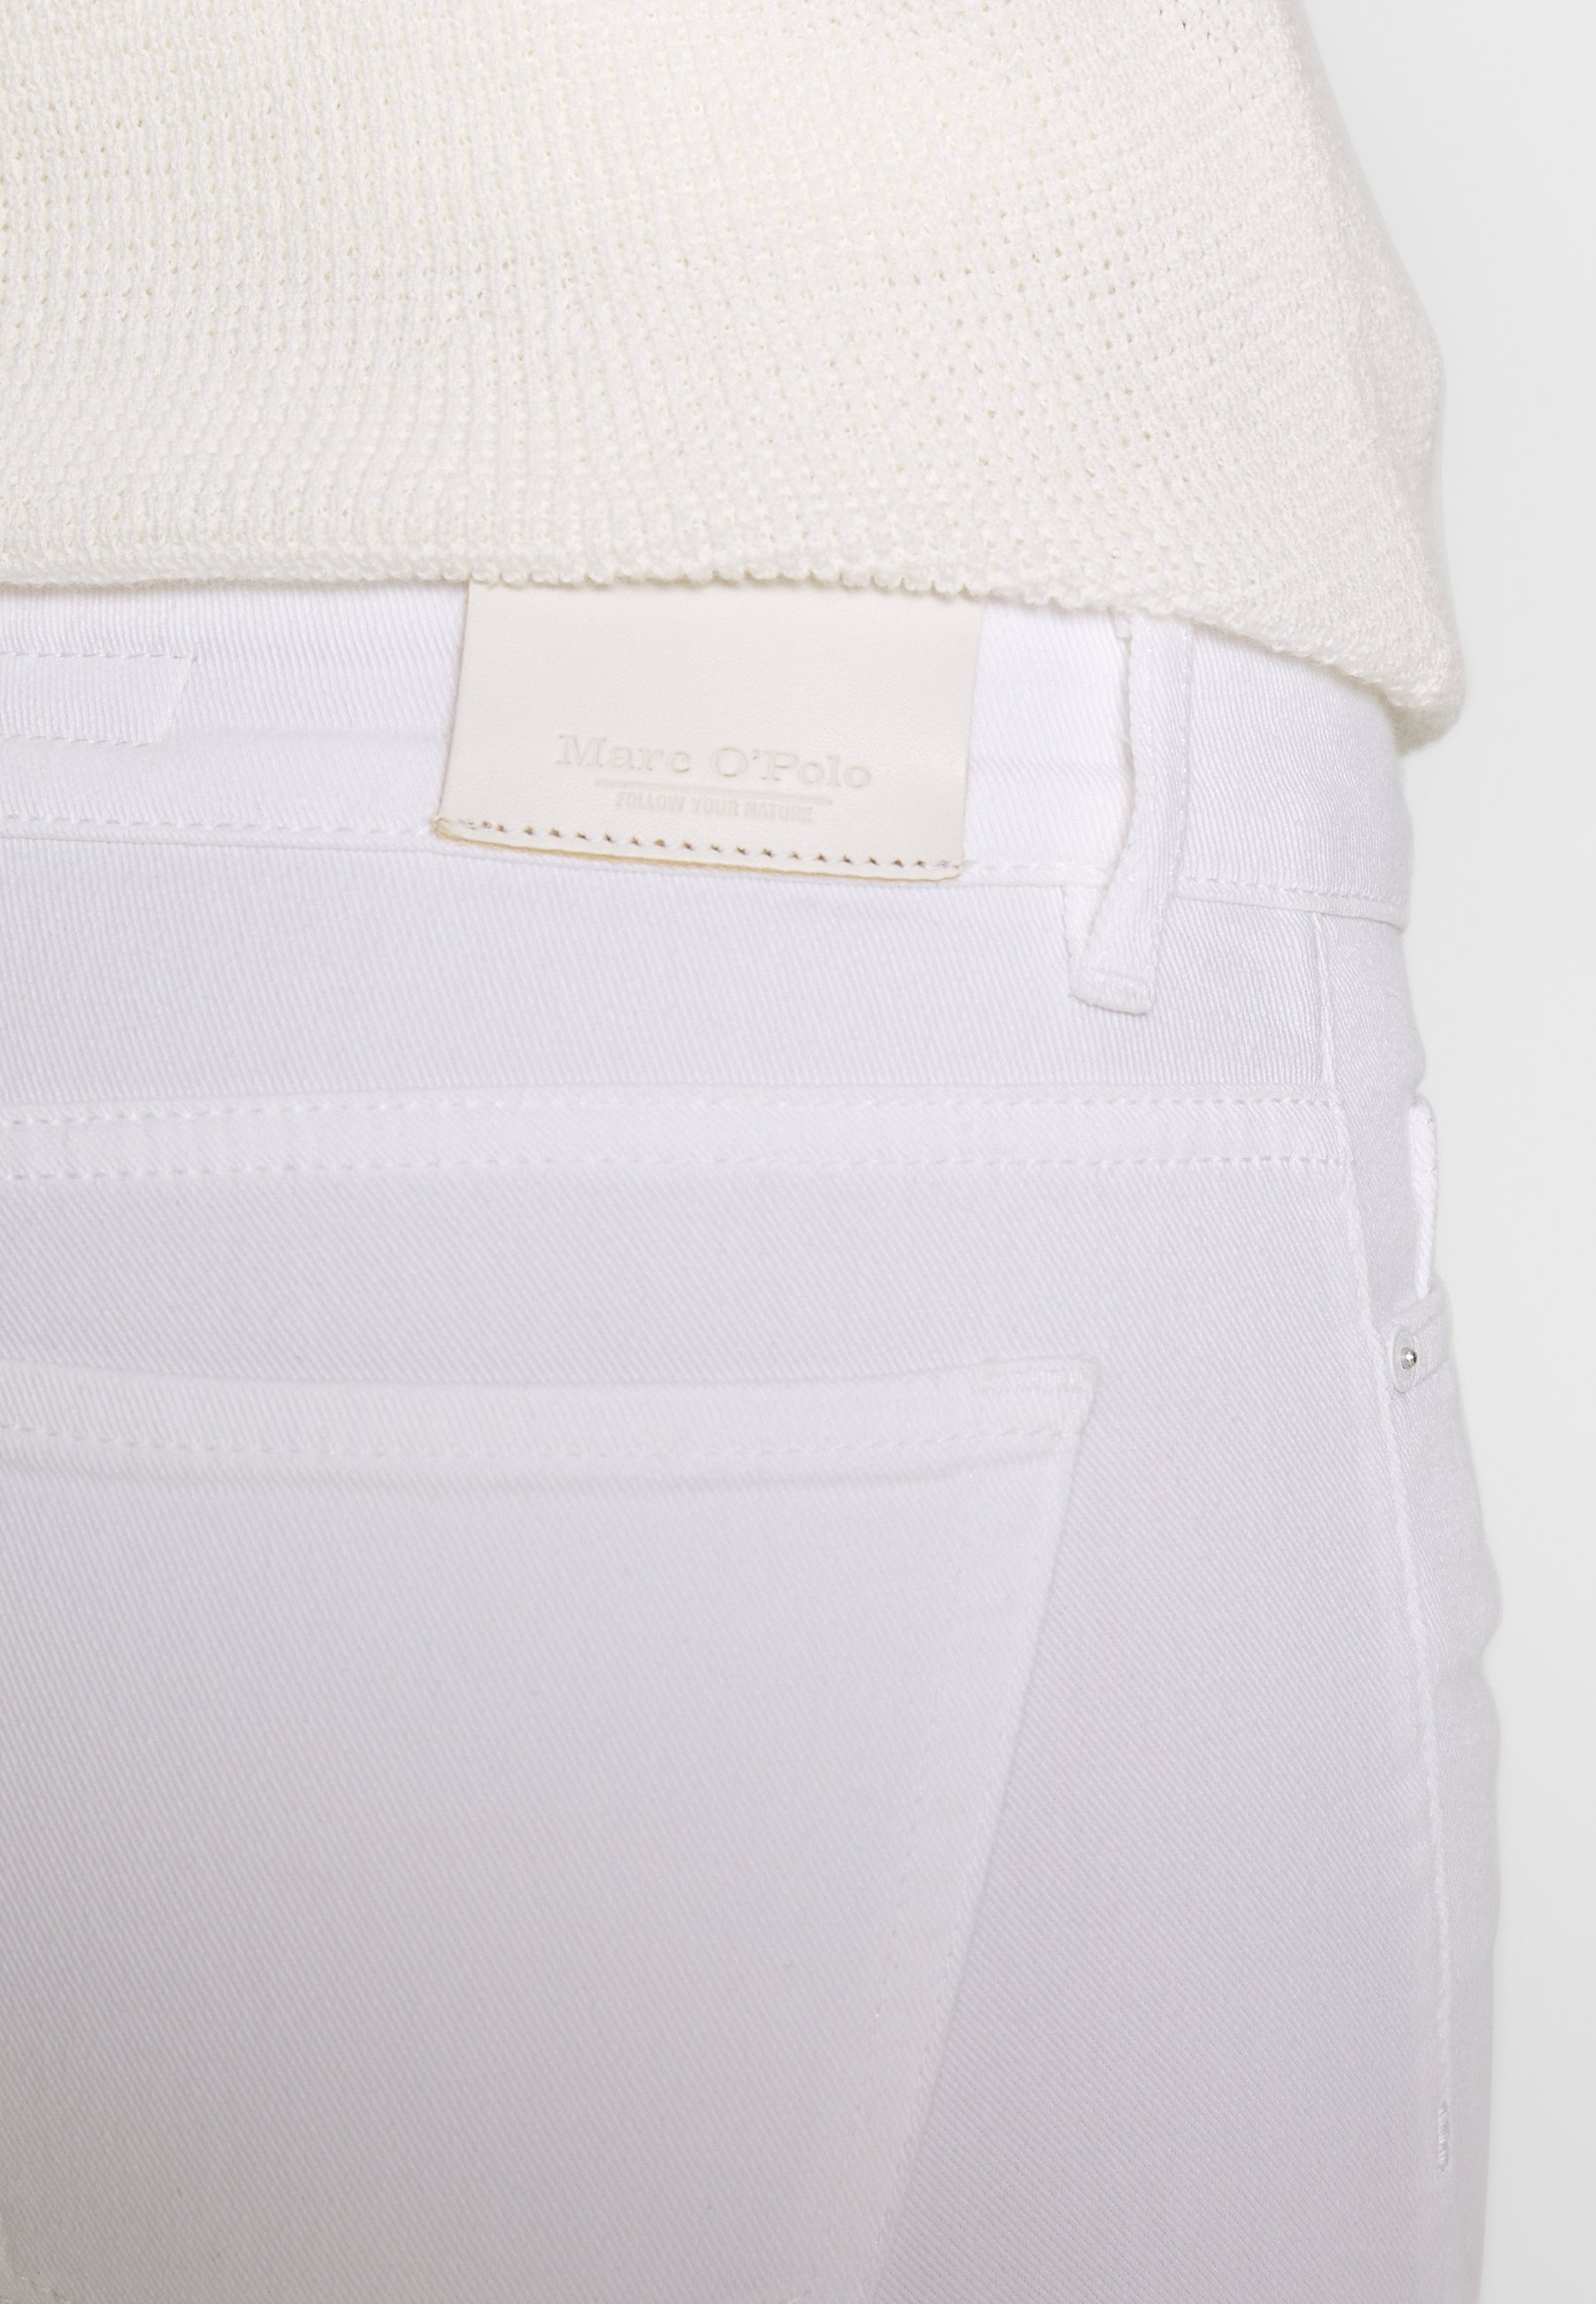 Marc O'Polo TROUSER CROPPED LENGTH - Jeans slim fit - white denim wash